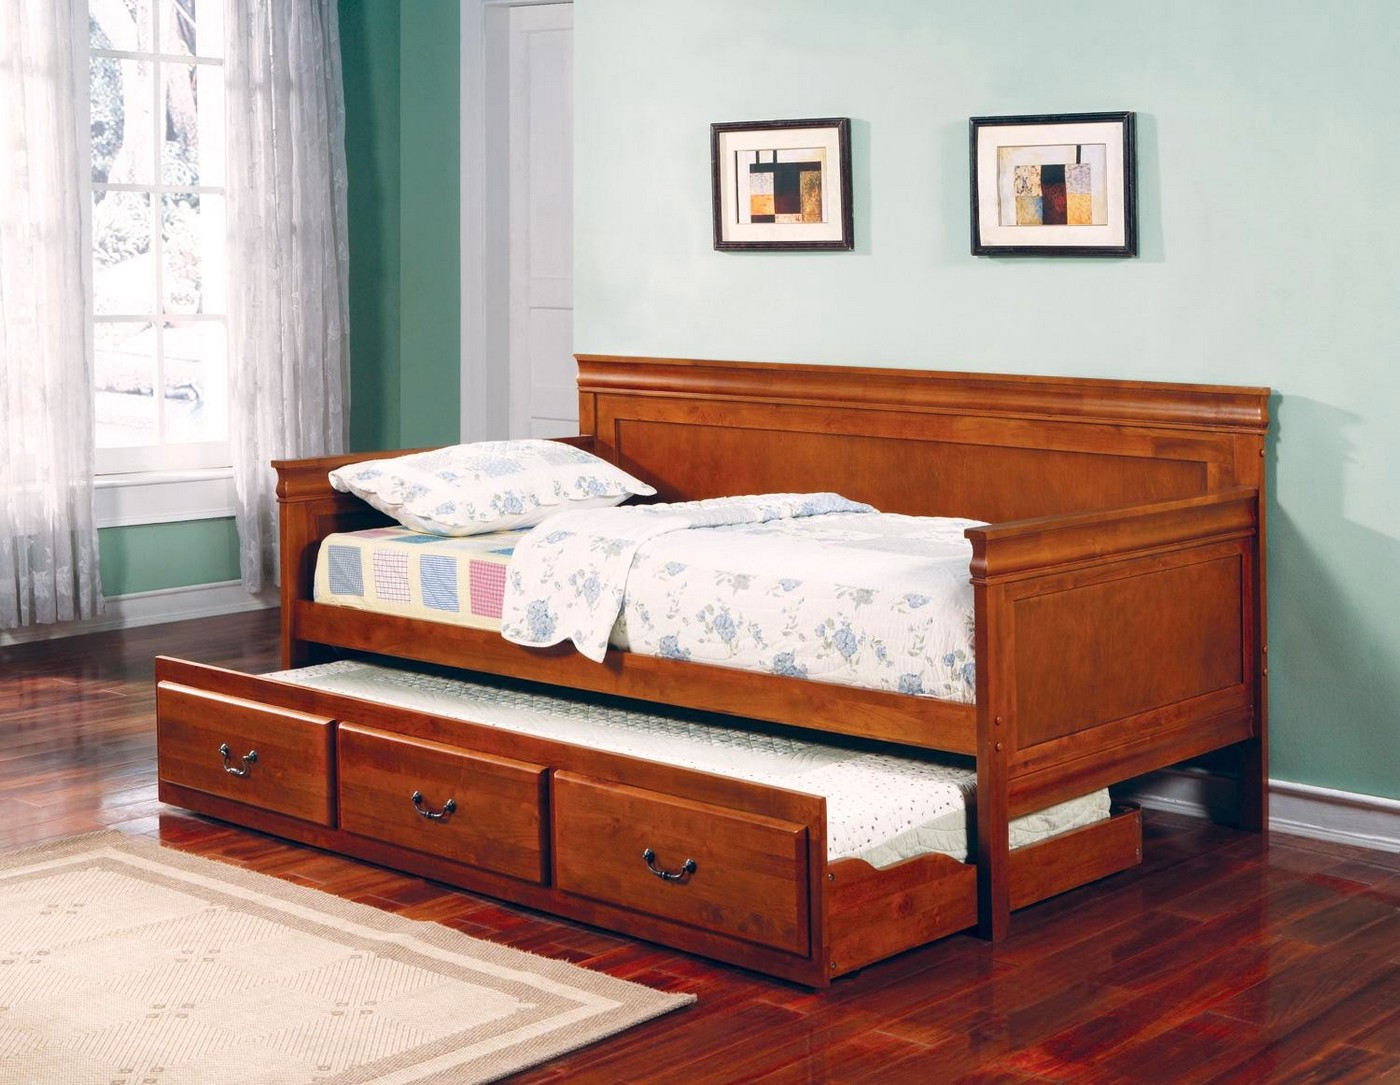 casey oak finish traditional pull out trundle daybed. Black Bedroom Furniture Sets. Home Design Ideas